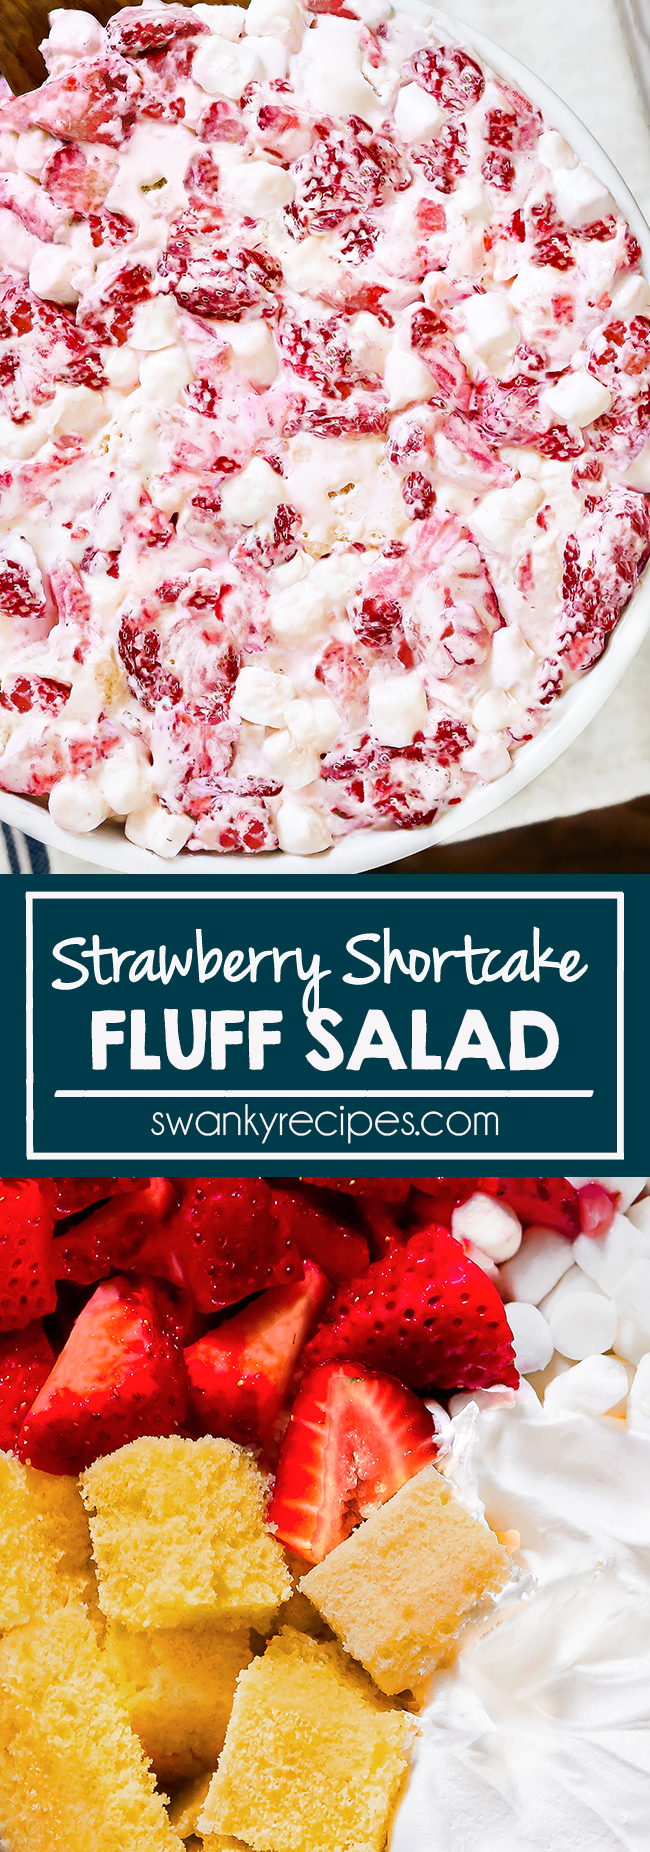 Strawberry Fluff Salad - Quick strawberry dessert salad with fresh strawberries, pound cake, whipped cream, and marshmallows. Easy summer or holiday side dish dessert. Fluff Salad I shortcake I quick dessert recipes I summer desserts I holiday desserts I appetizer #shortcake #desserts #strawberryrecipes